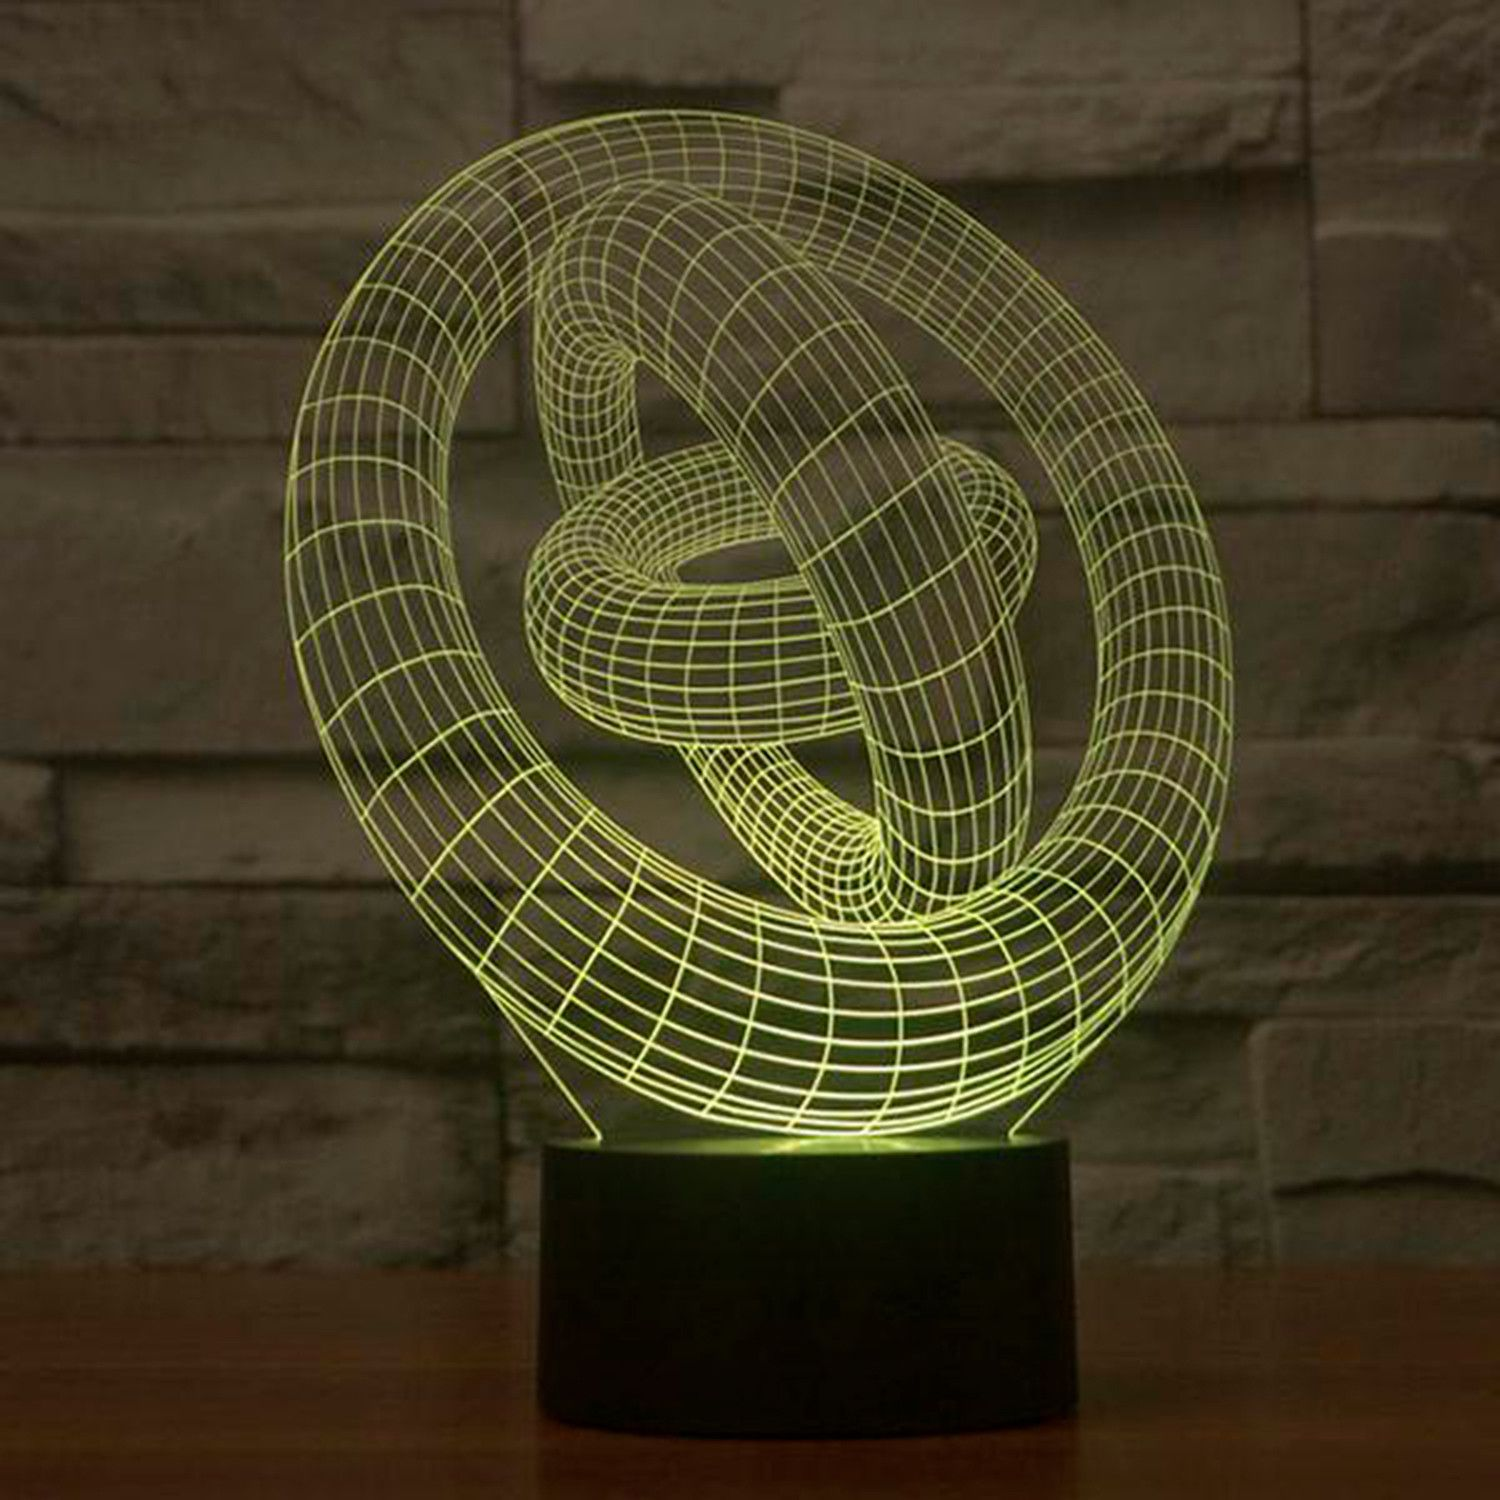 3d Lamp Rings Decor Statement Premium Light 3d Led Lamp Lamp Design 3d Lamp